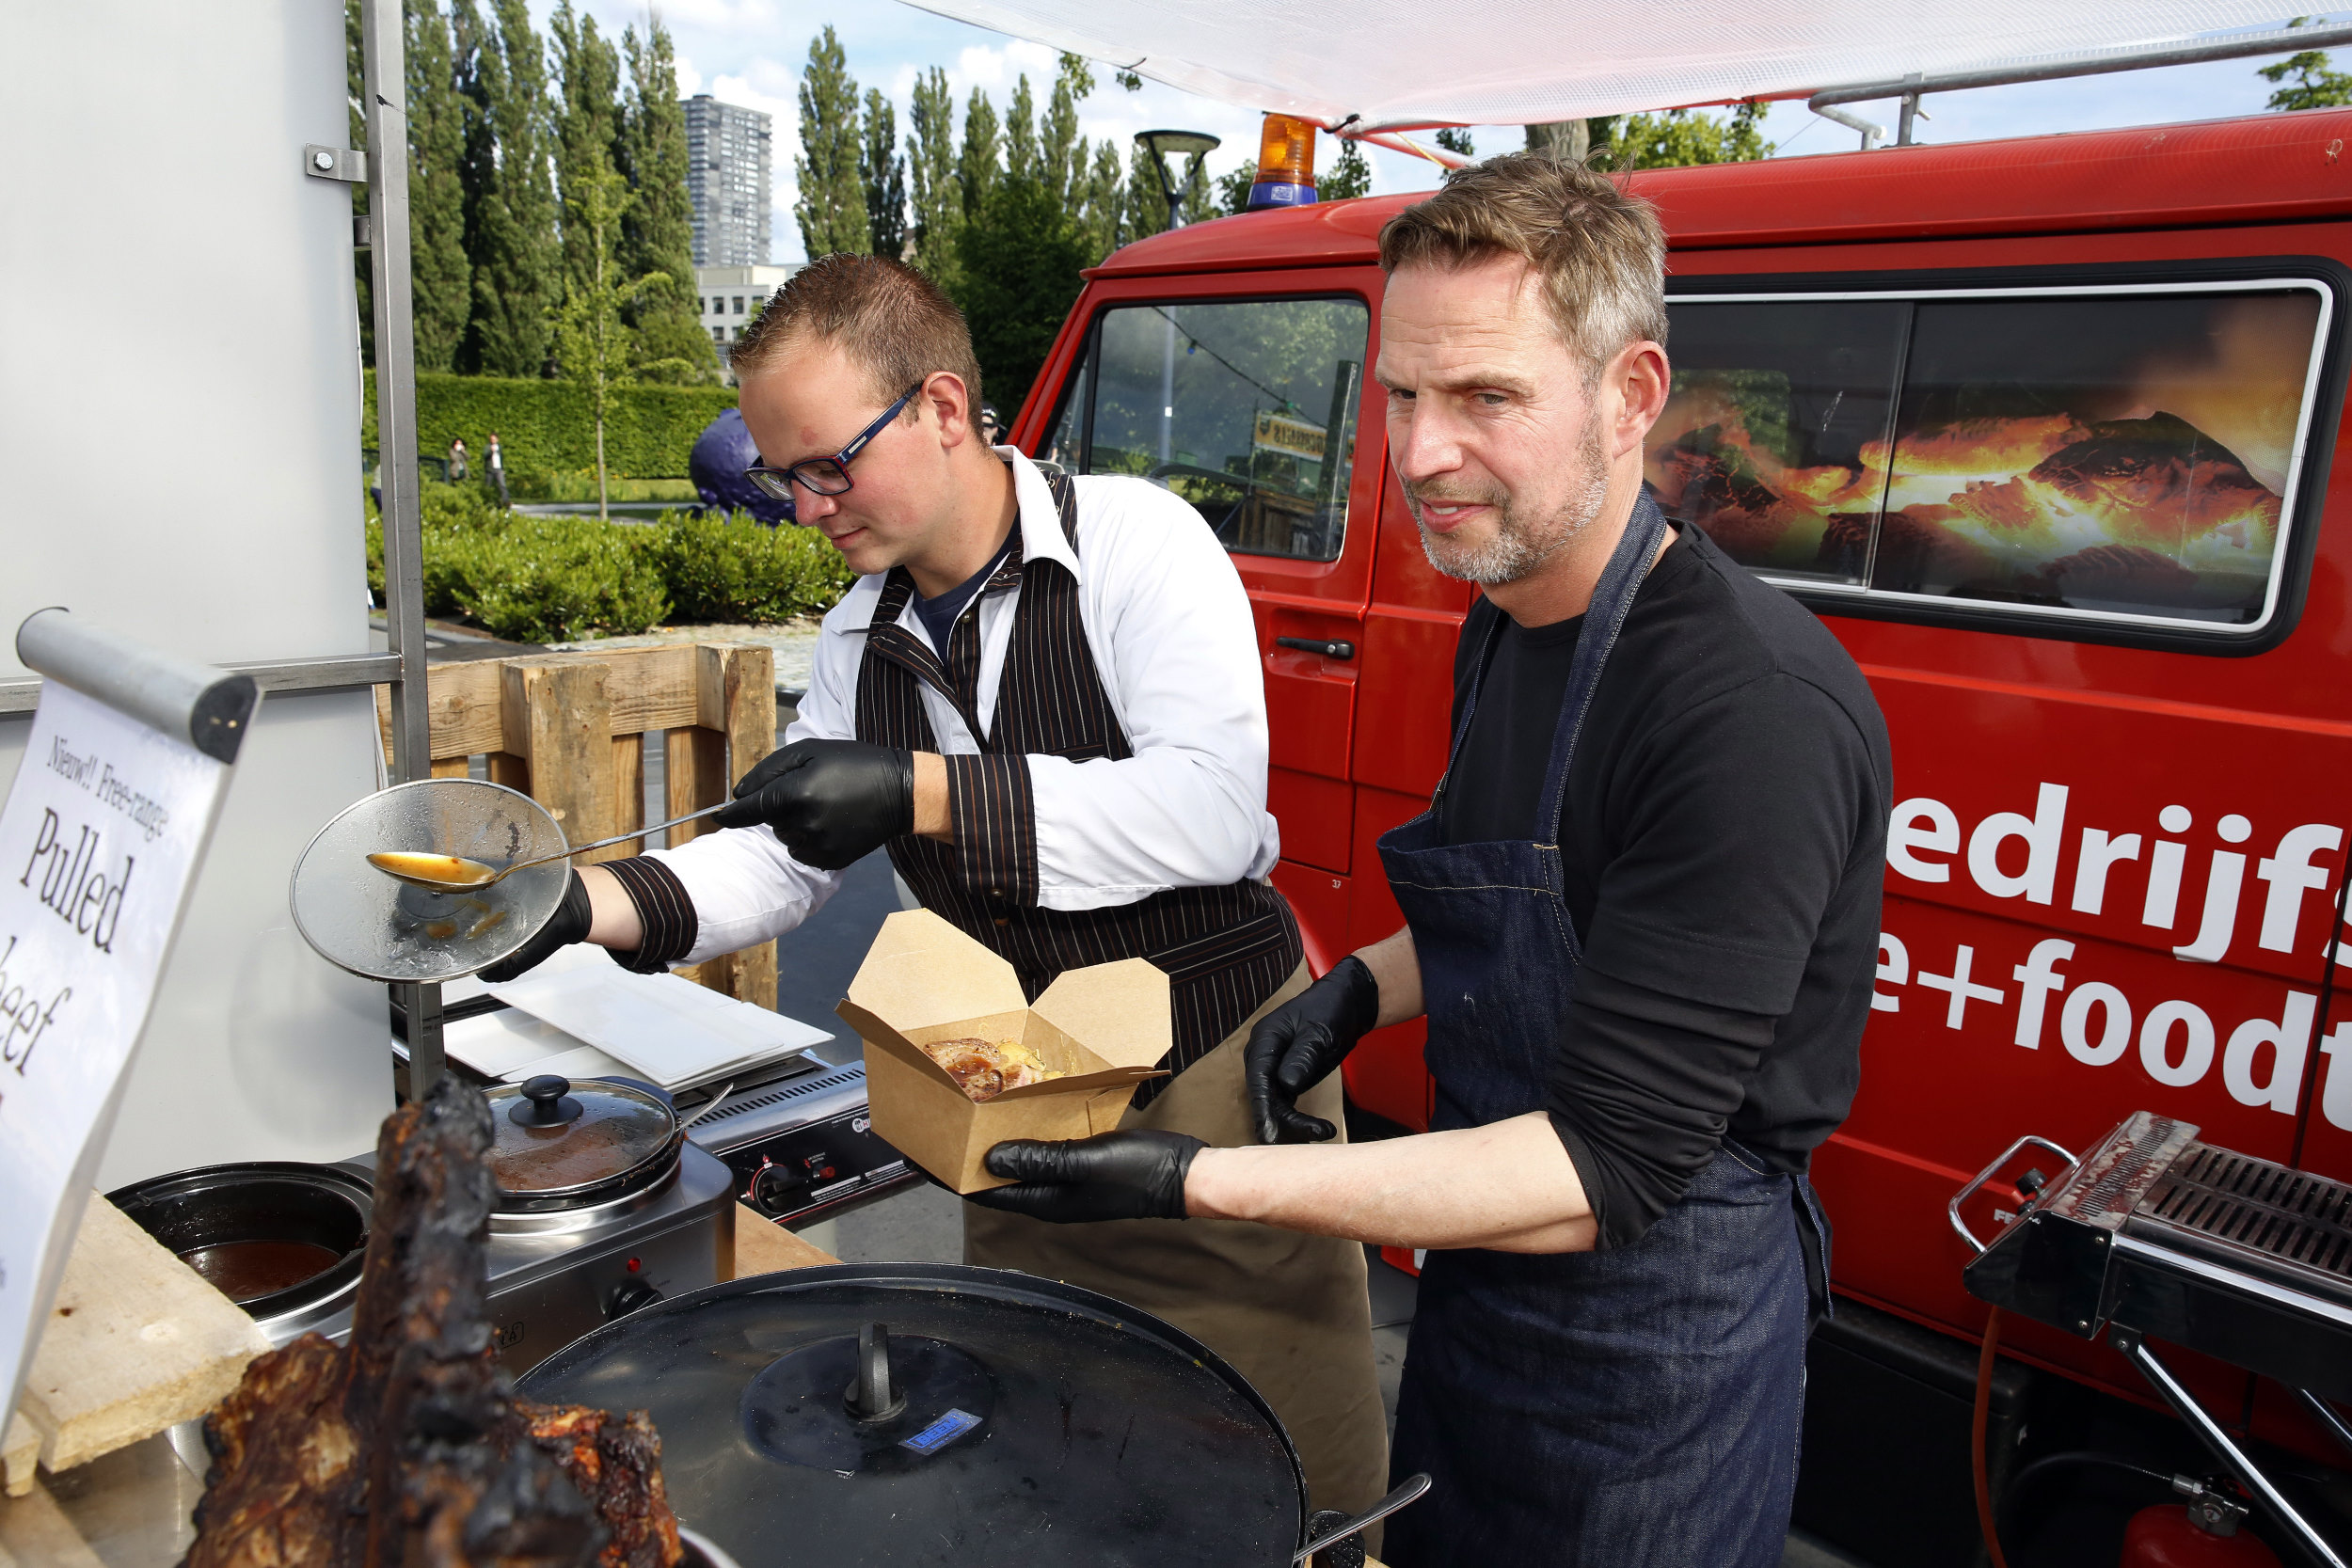 Feest Rotterdam Museumpark Picadilly Food Camp Slager Wapenaar